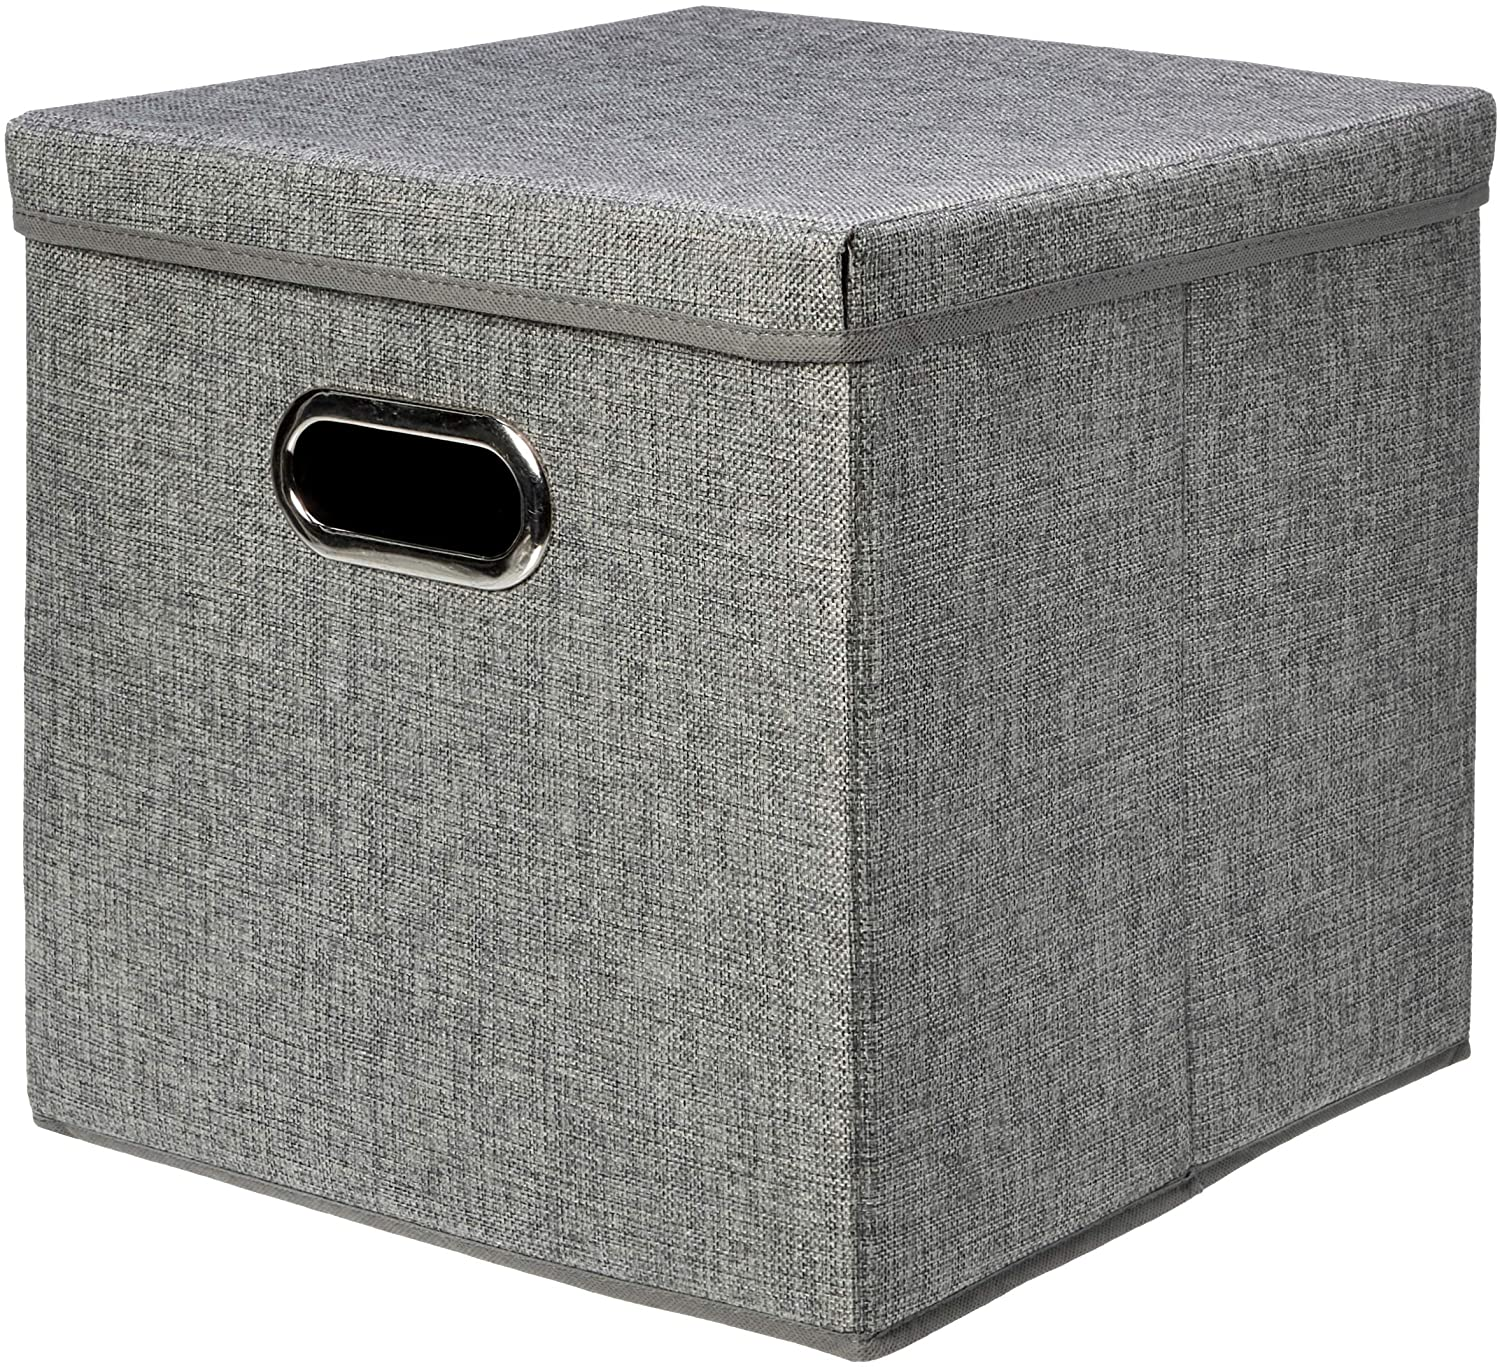 AmazonBasics Foldable Burlap Cloth Cube Storage Bin with Lid, Set of 2